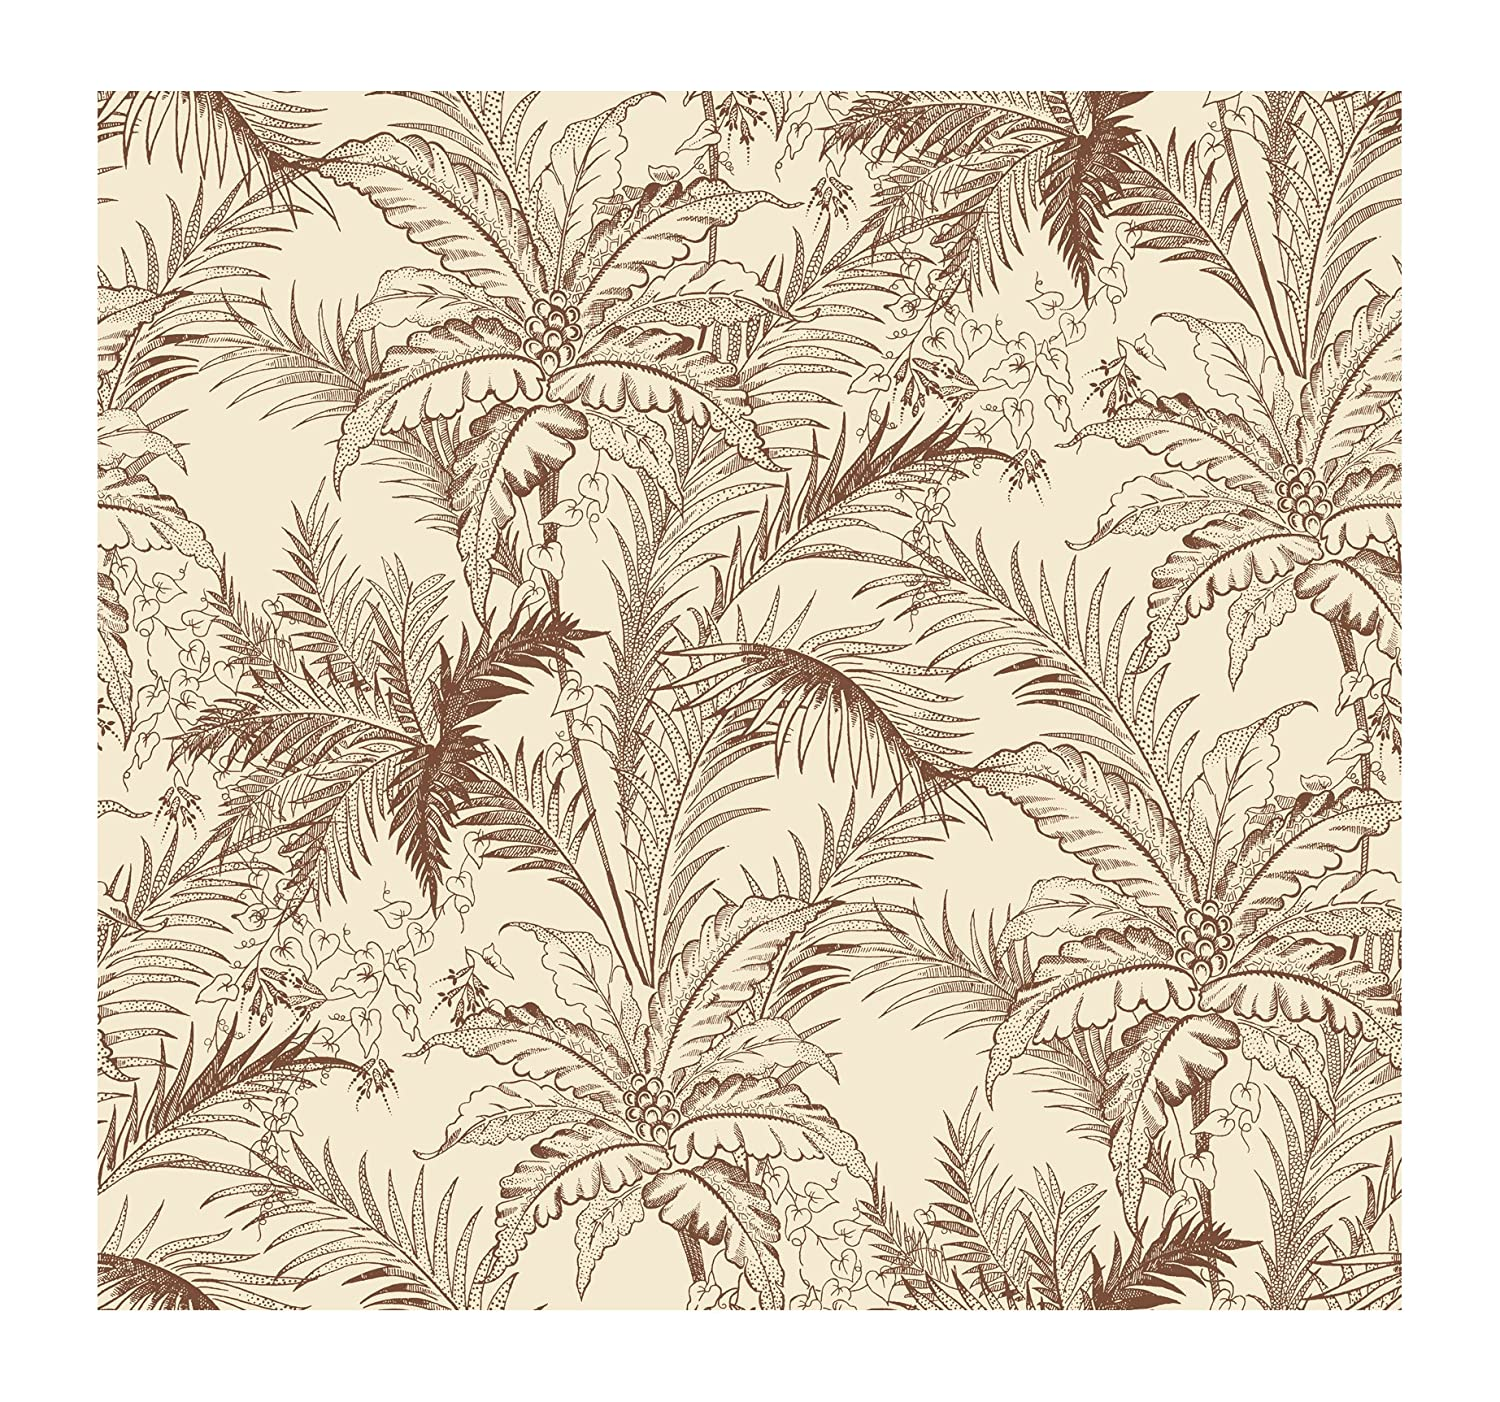 York Wallcoverings AC6105SMP By The Sea Leaf Toile  8 X 10 Wallpaper Memo Sample Brown//Grey Background